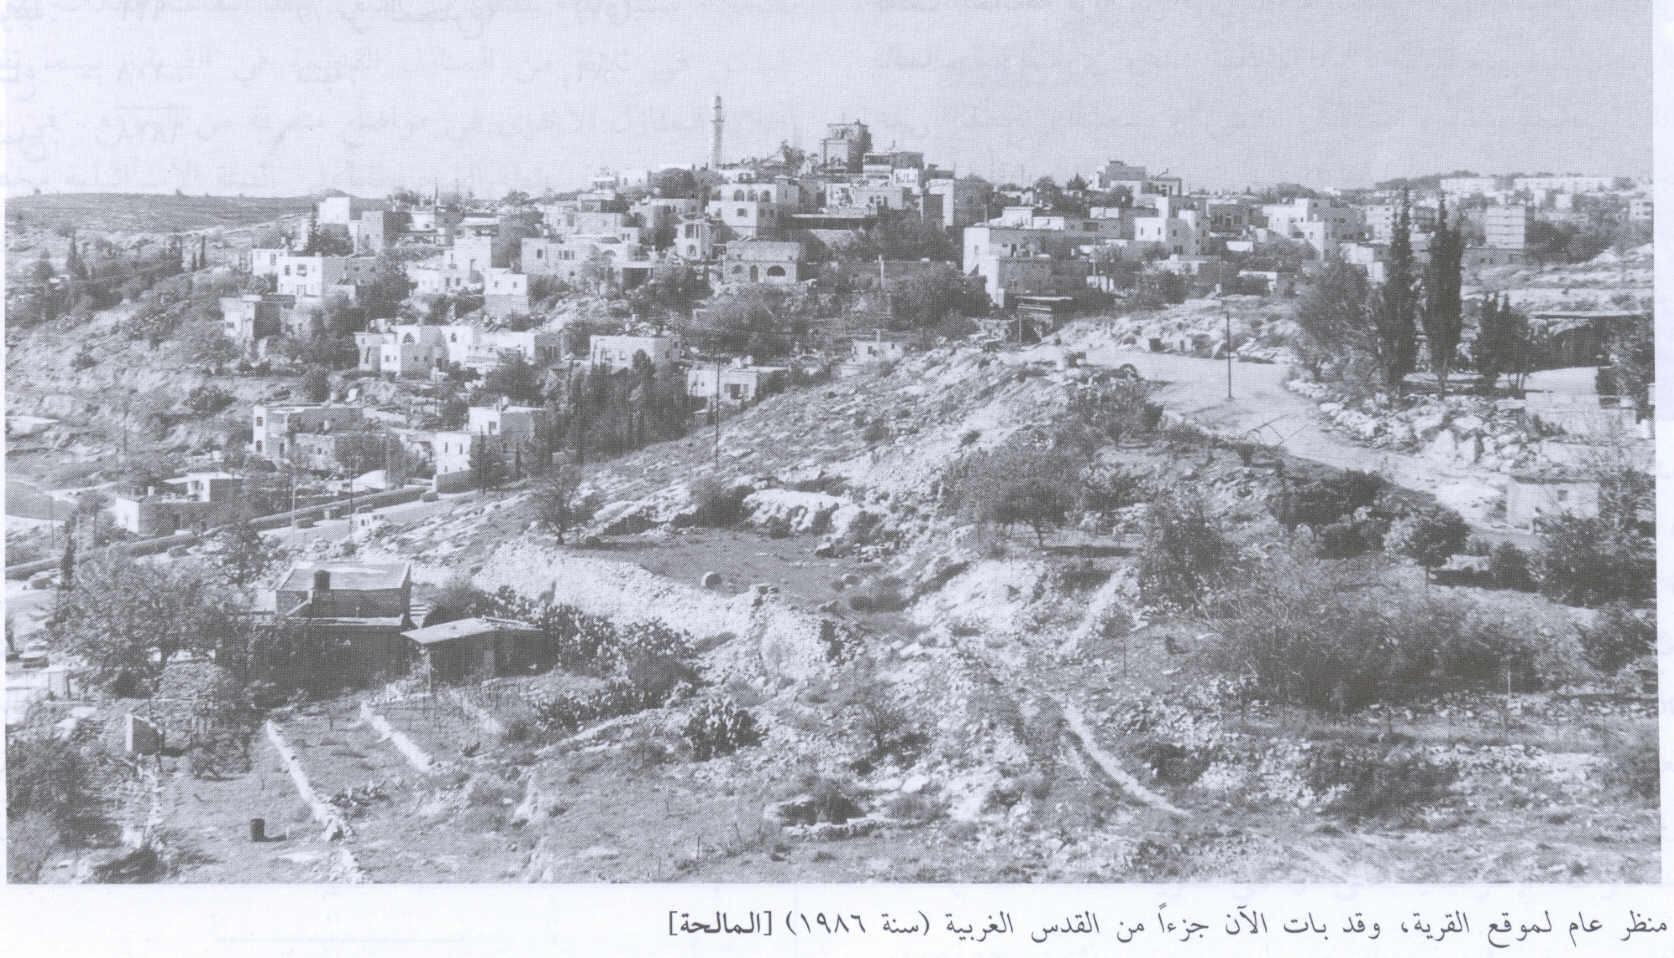 al-Maliha - المالحه : General view of the village, 1986